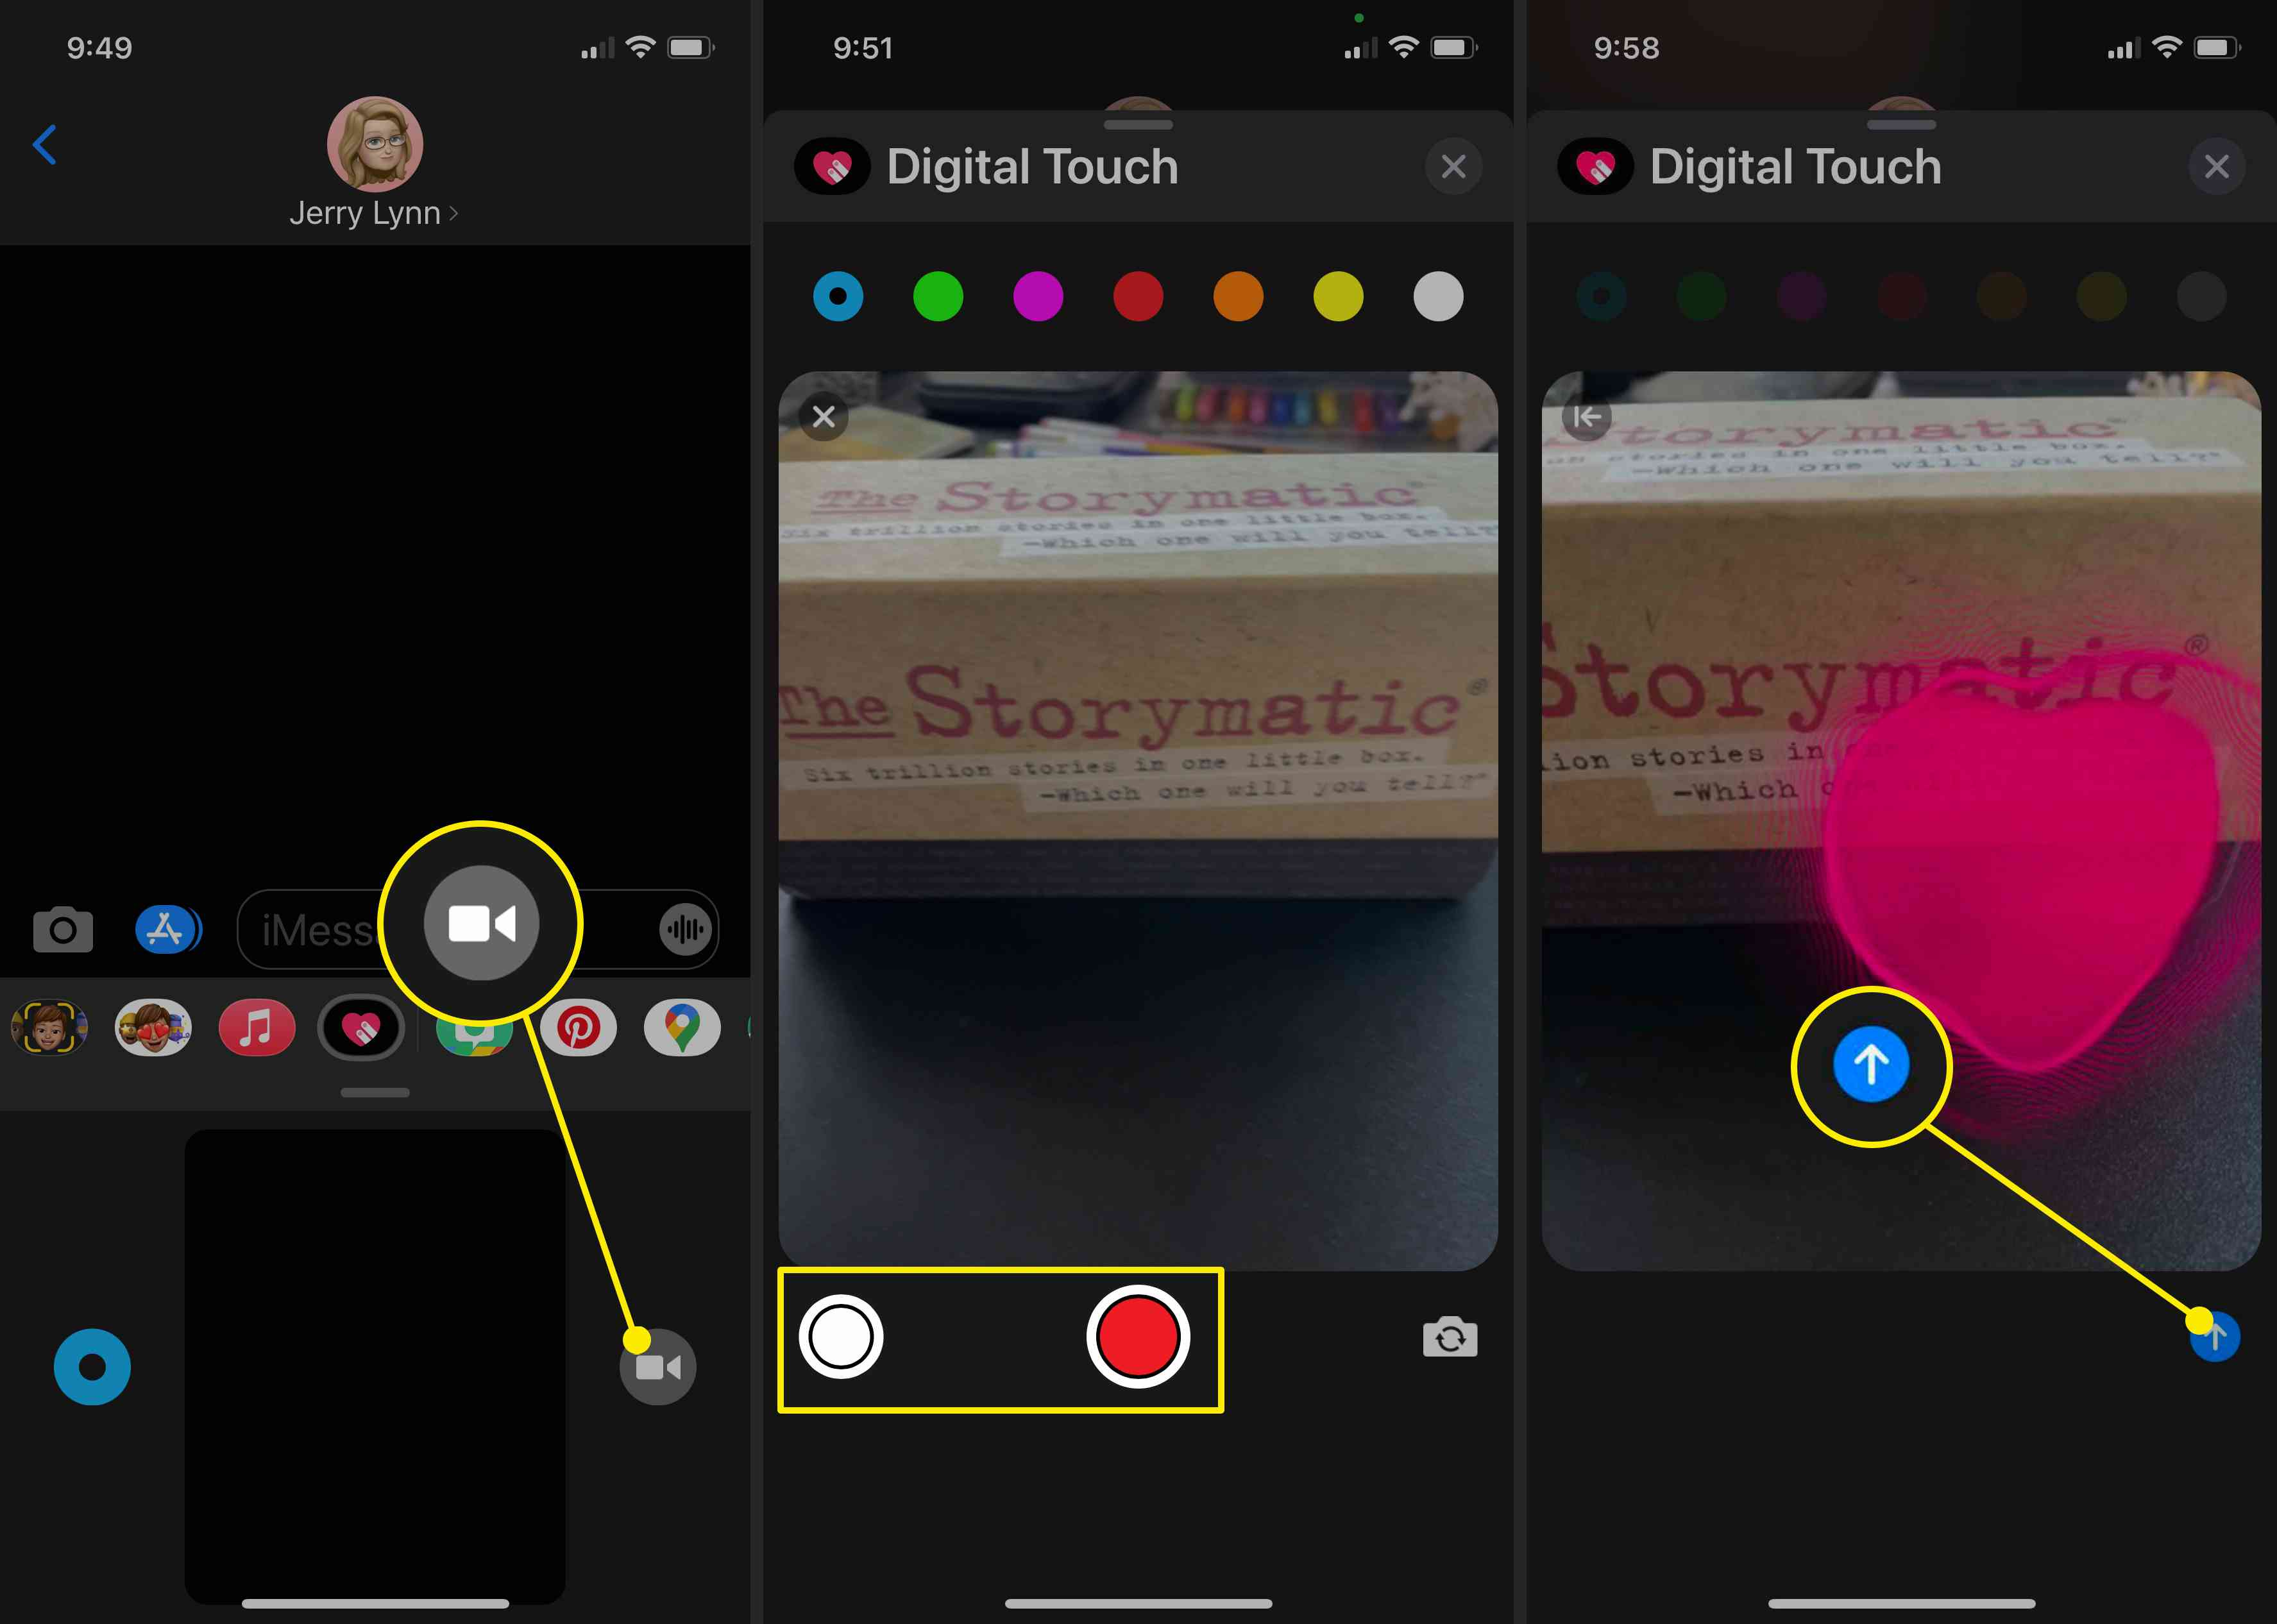 Screenshots of adding Digital Touch effects to photos and videos in iMessage.